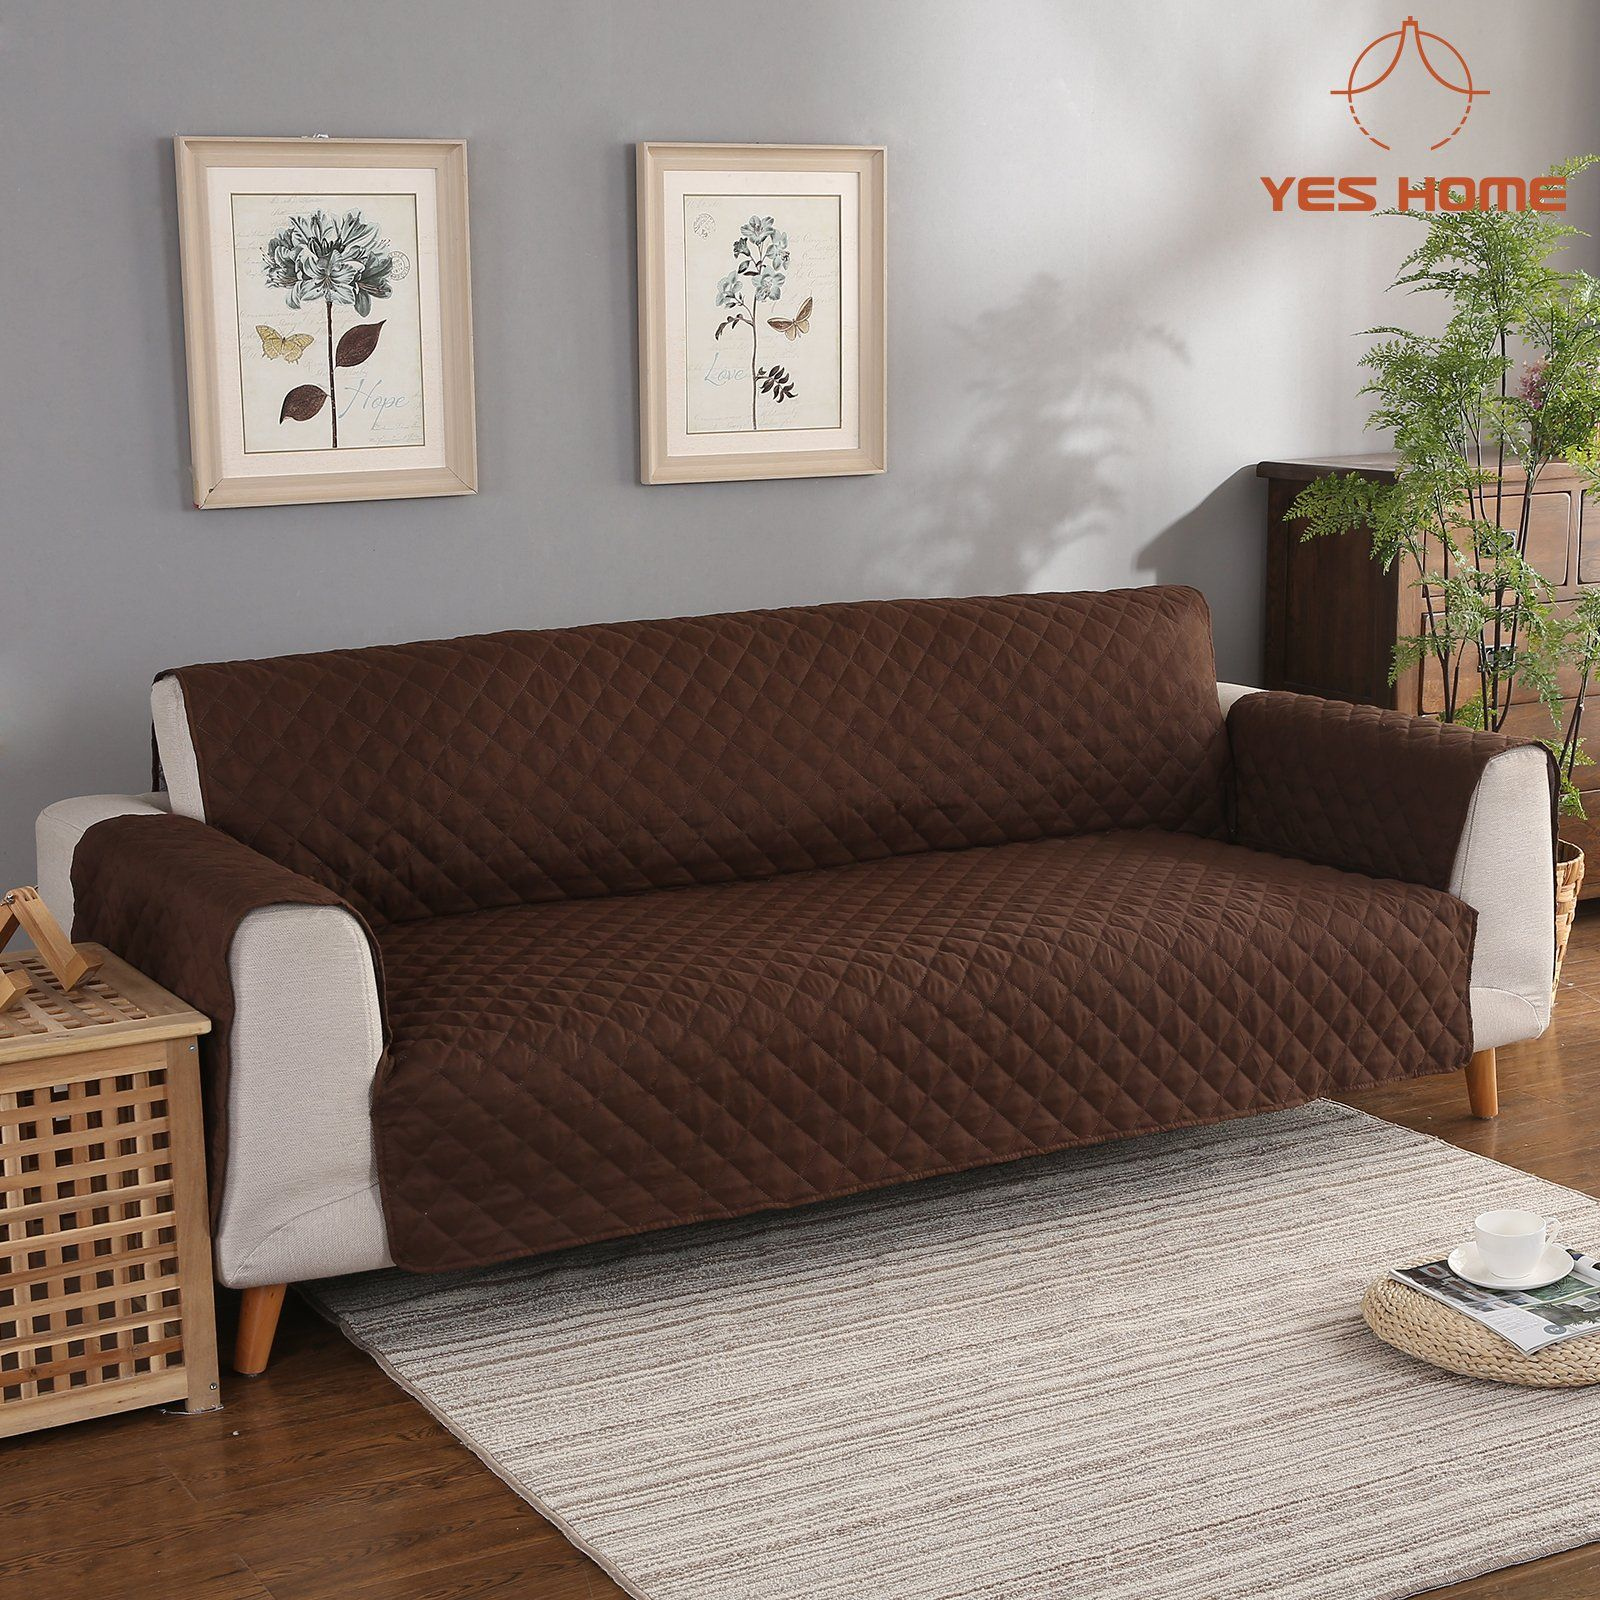 Recliner Sofa Cover Anti-Slip Sofa Covers For Living Room Furniture Protector